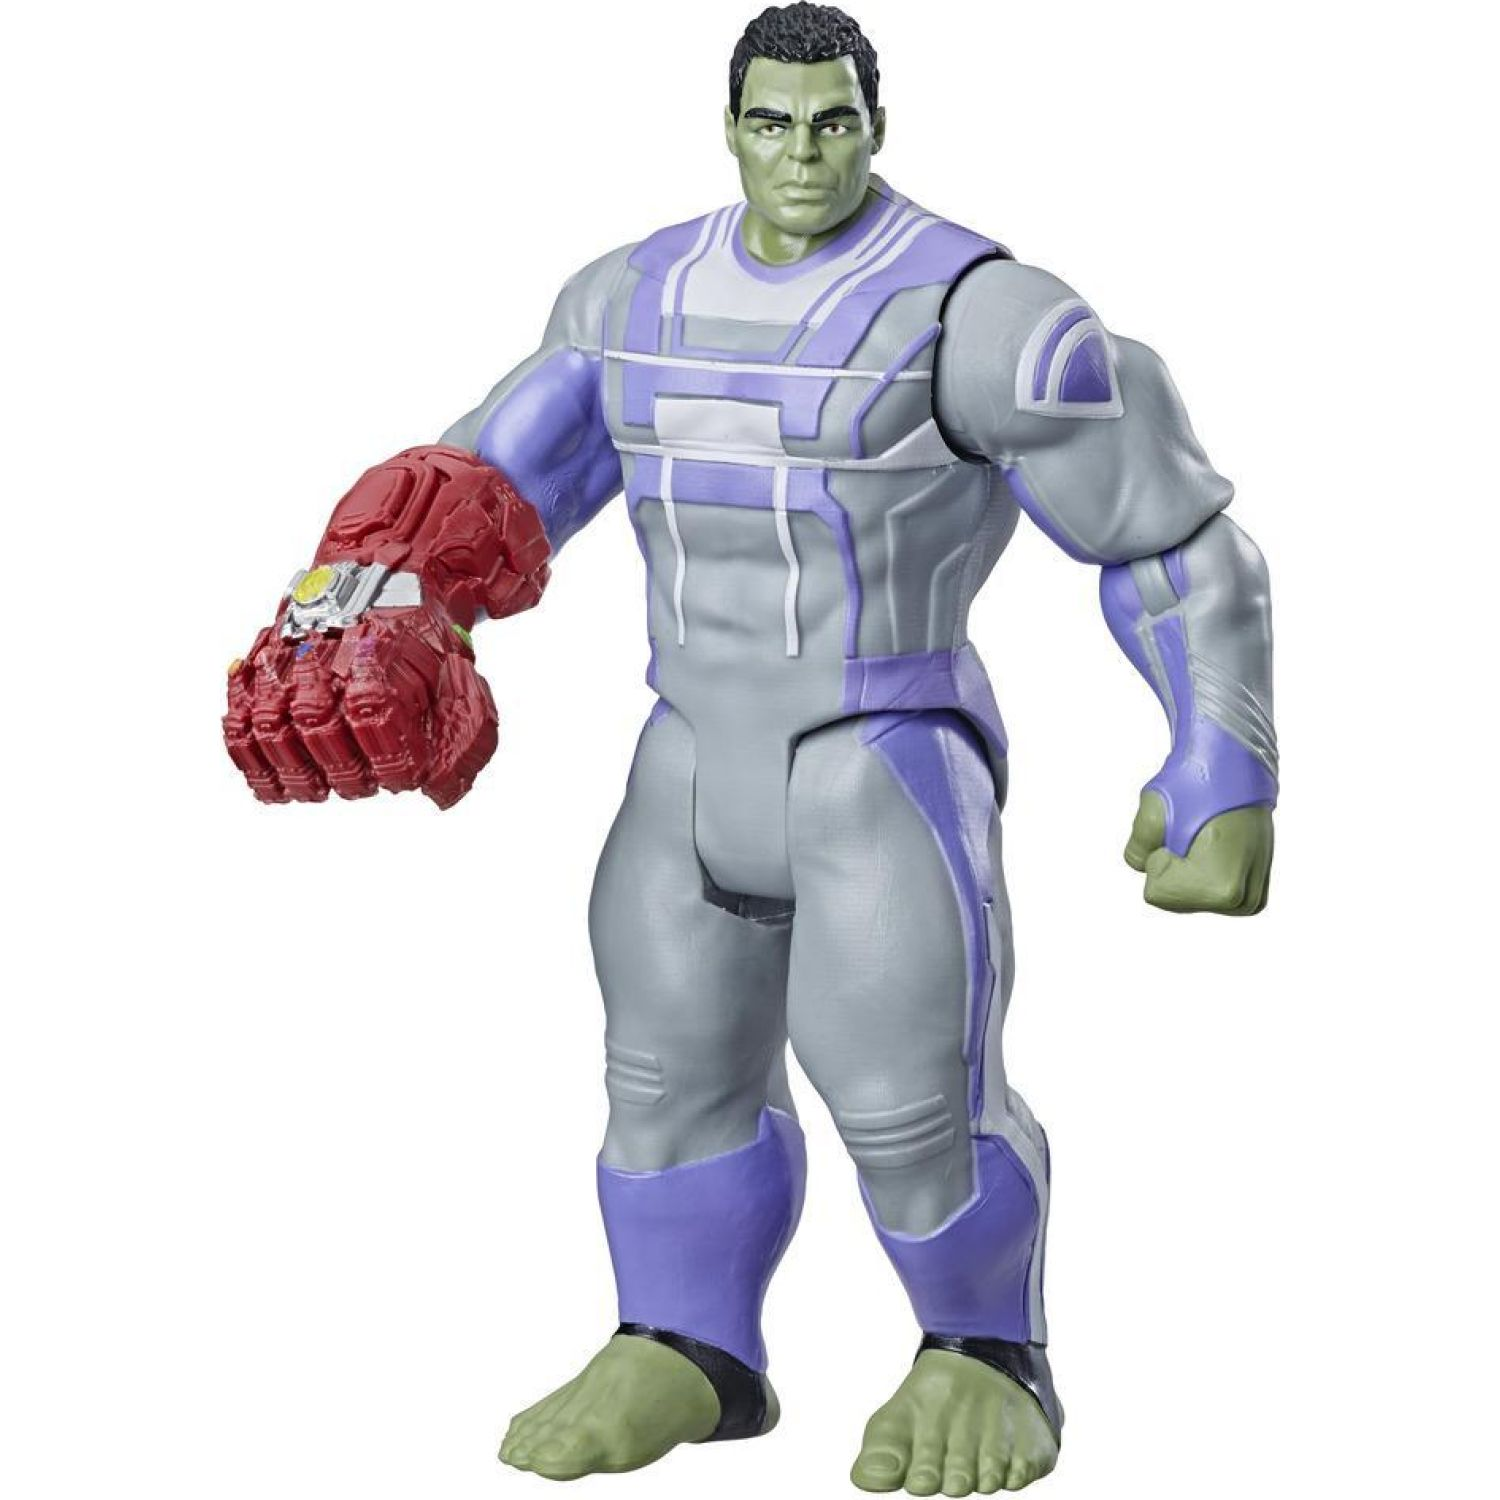 Avengers Avn 6in Dlx Movie Hulk Varios Figuras de acción